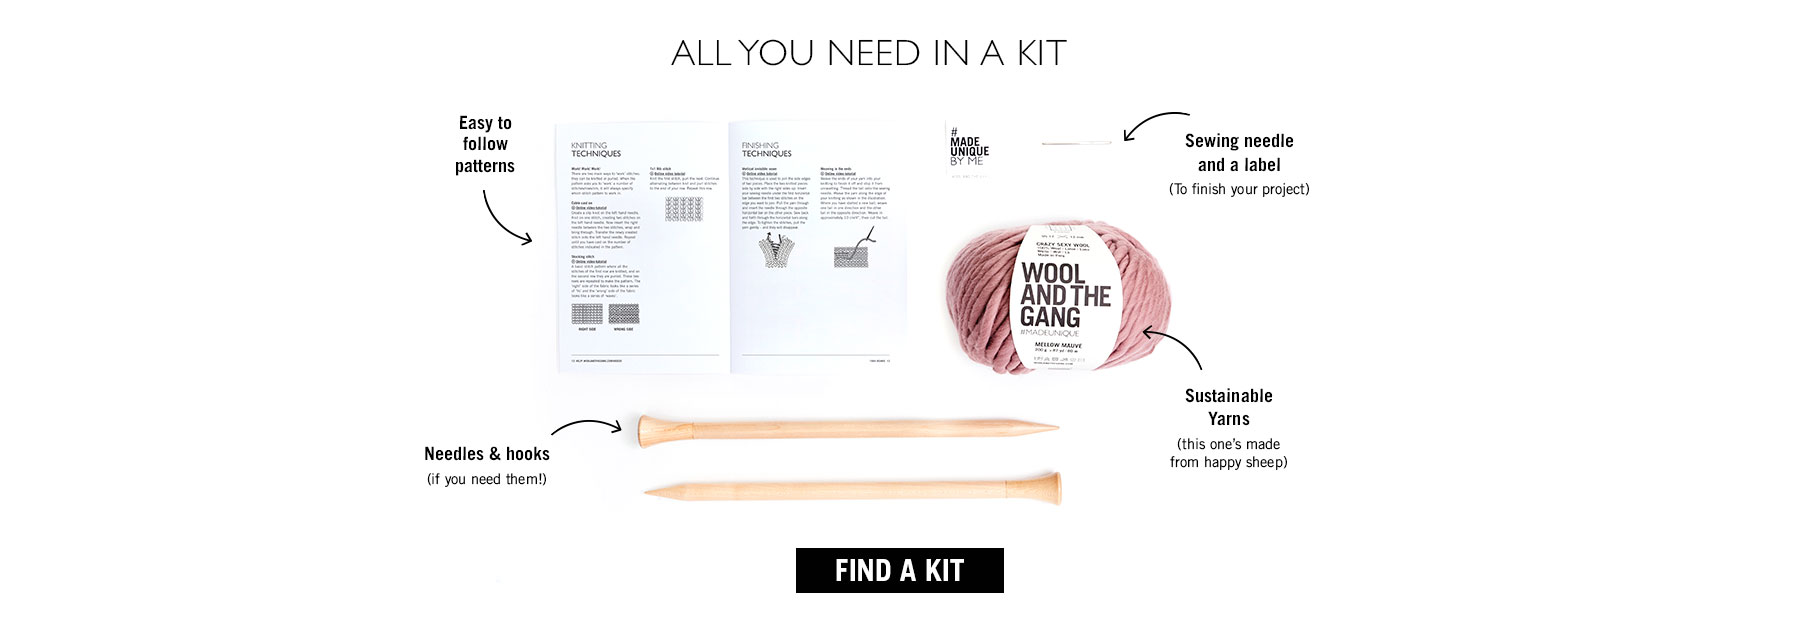 01 all you need in a kit